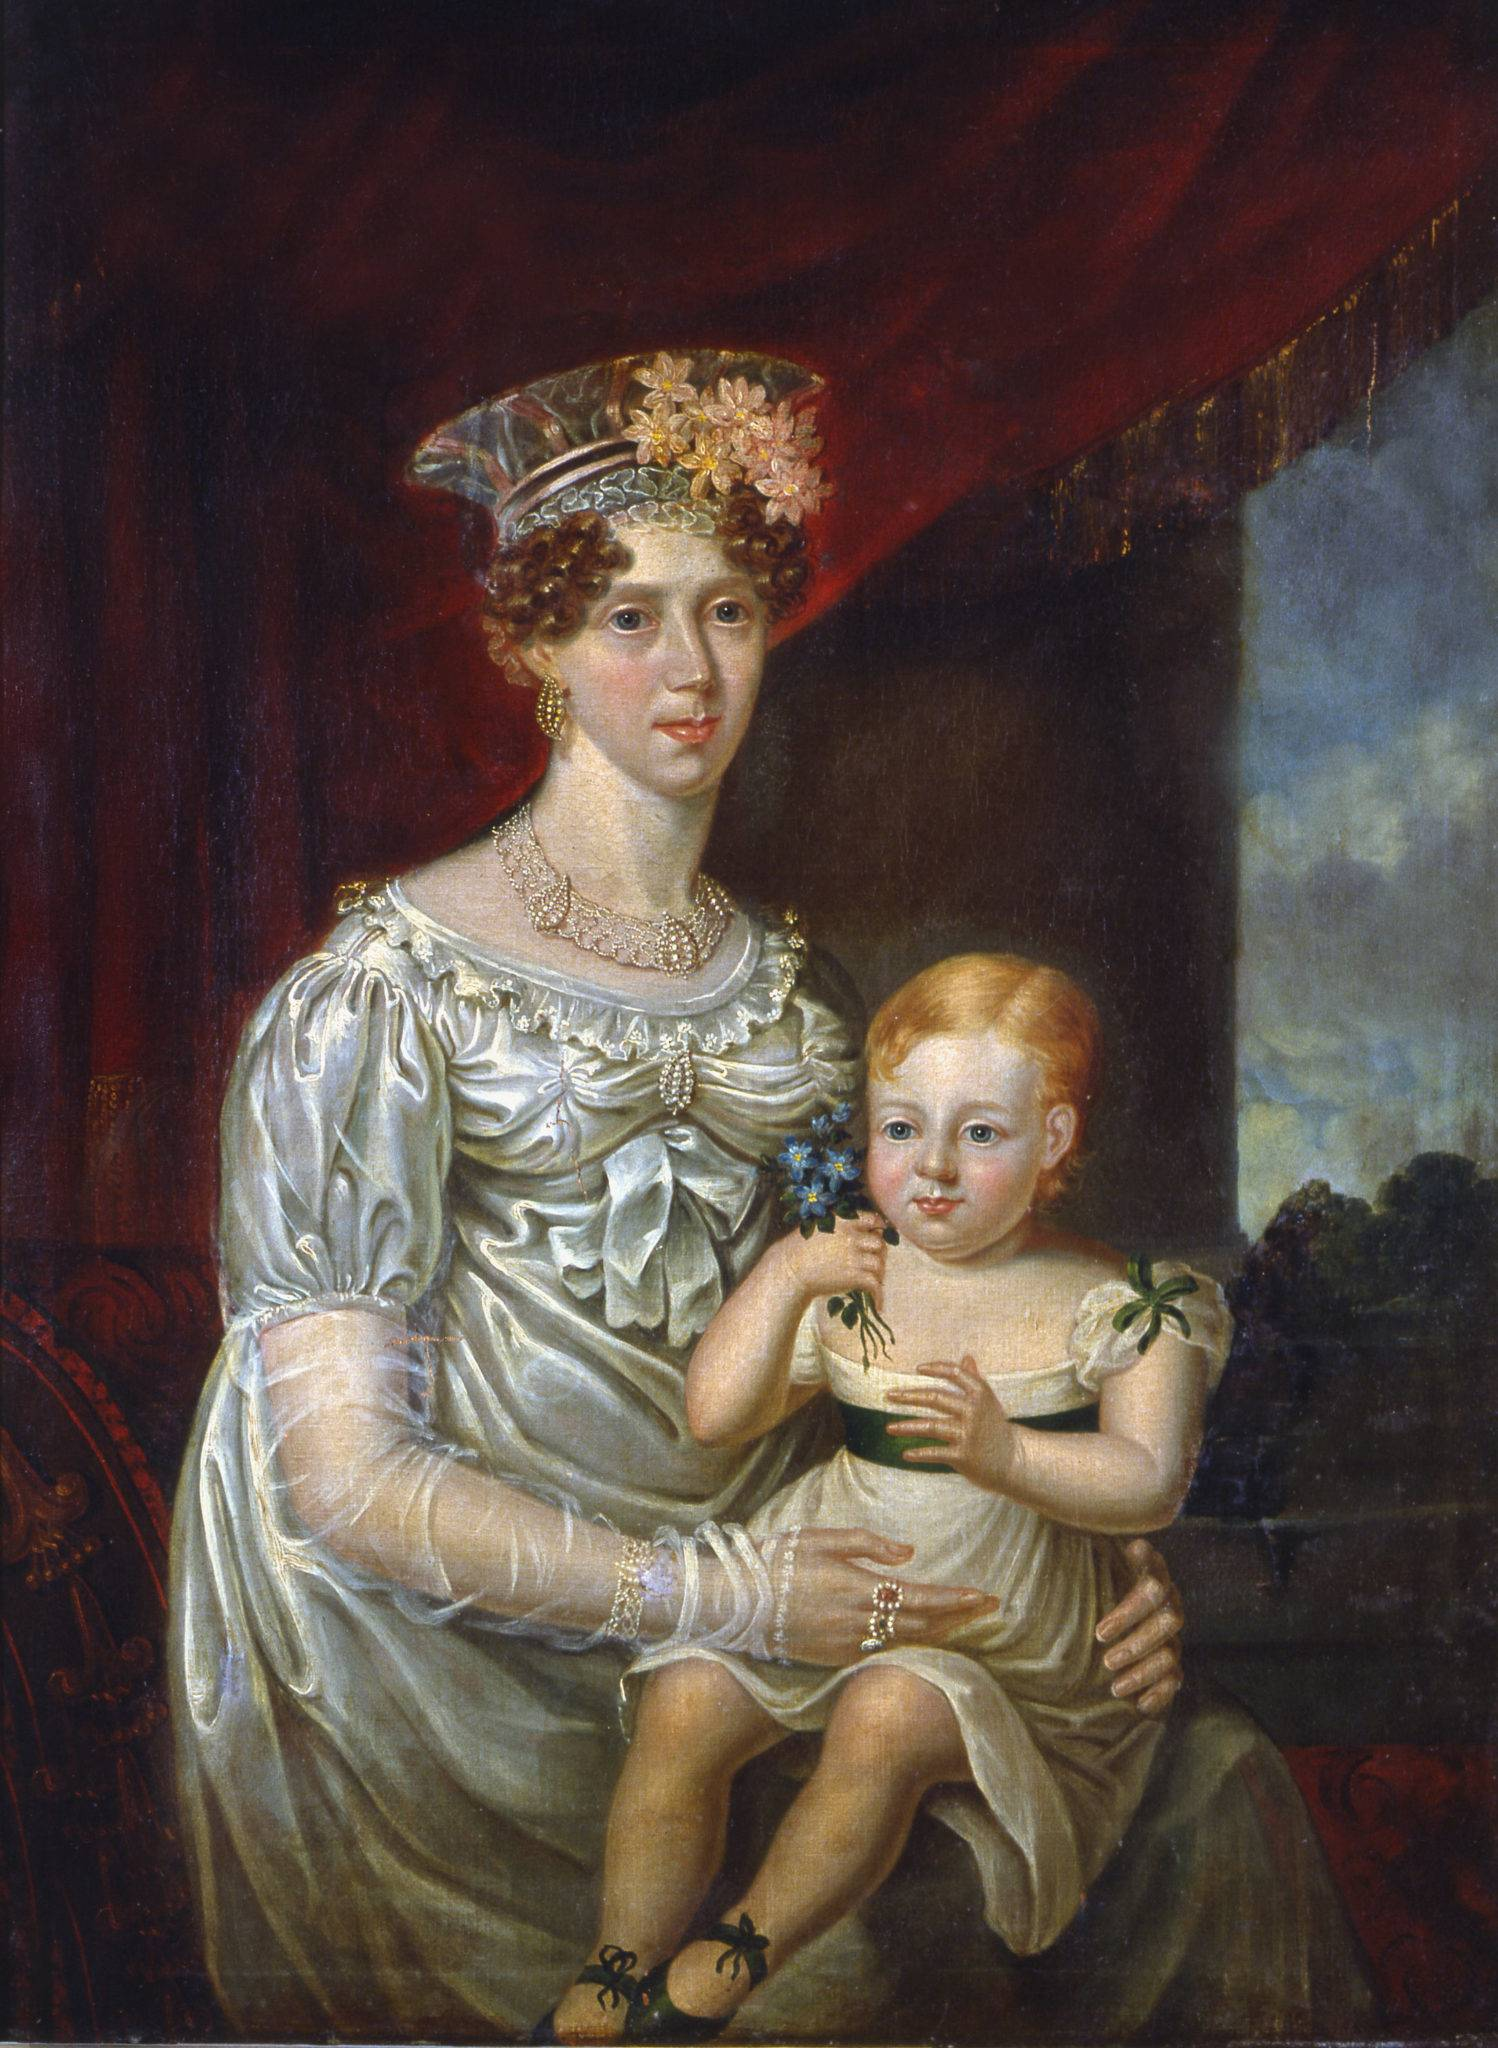 Mary O'Connell (wife of Daniel O'Connell) with her youngest son, Daniel. OPW